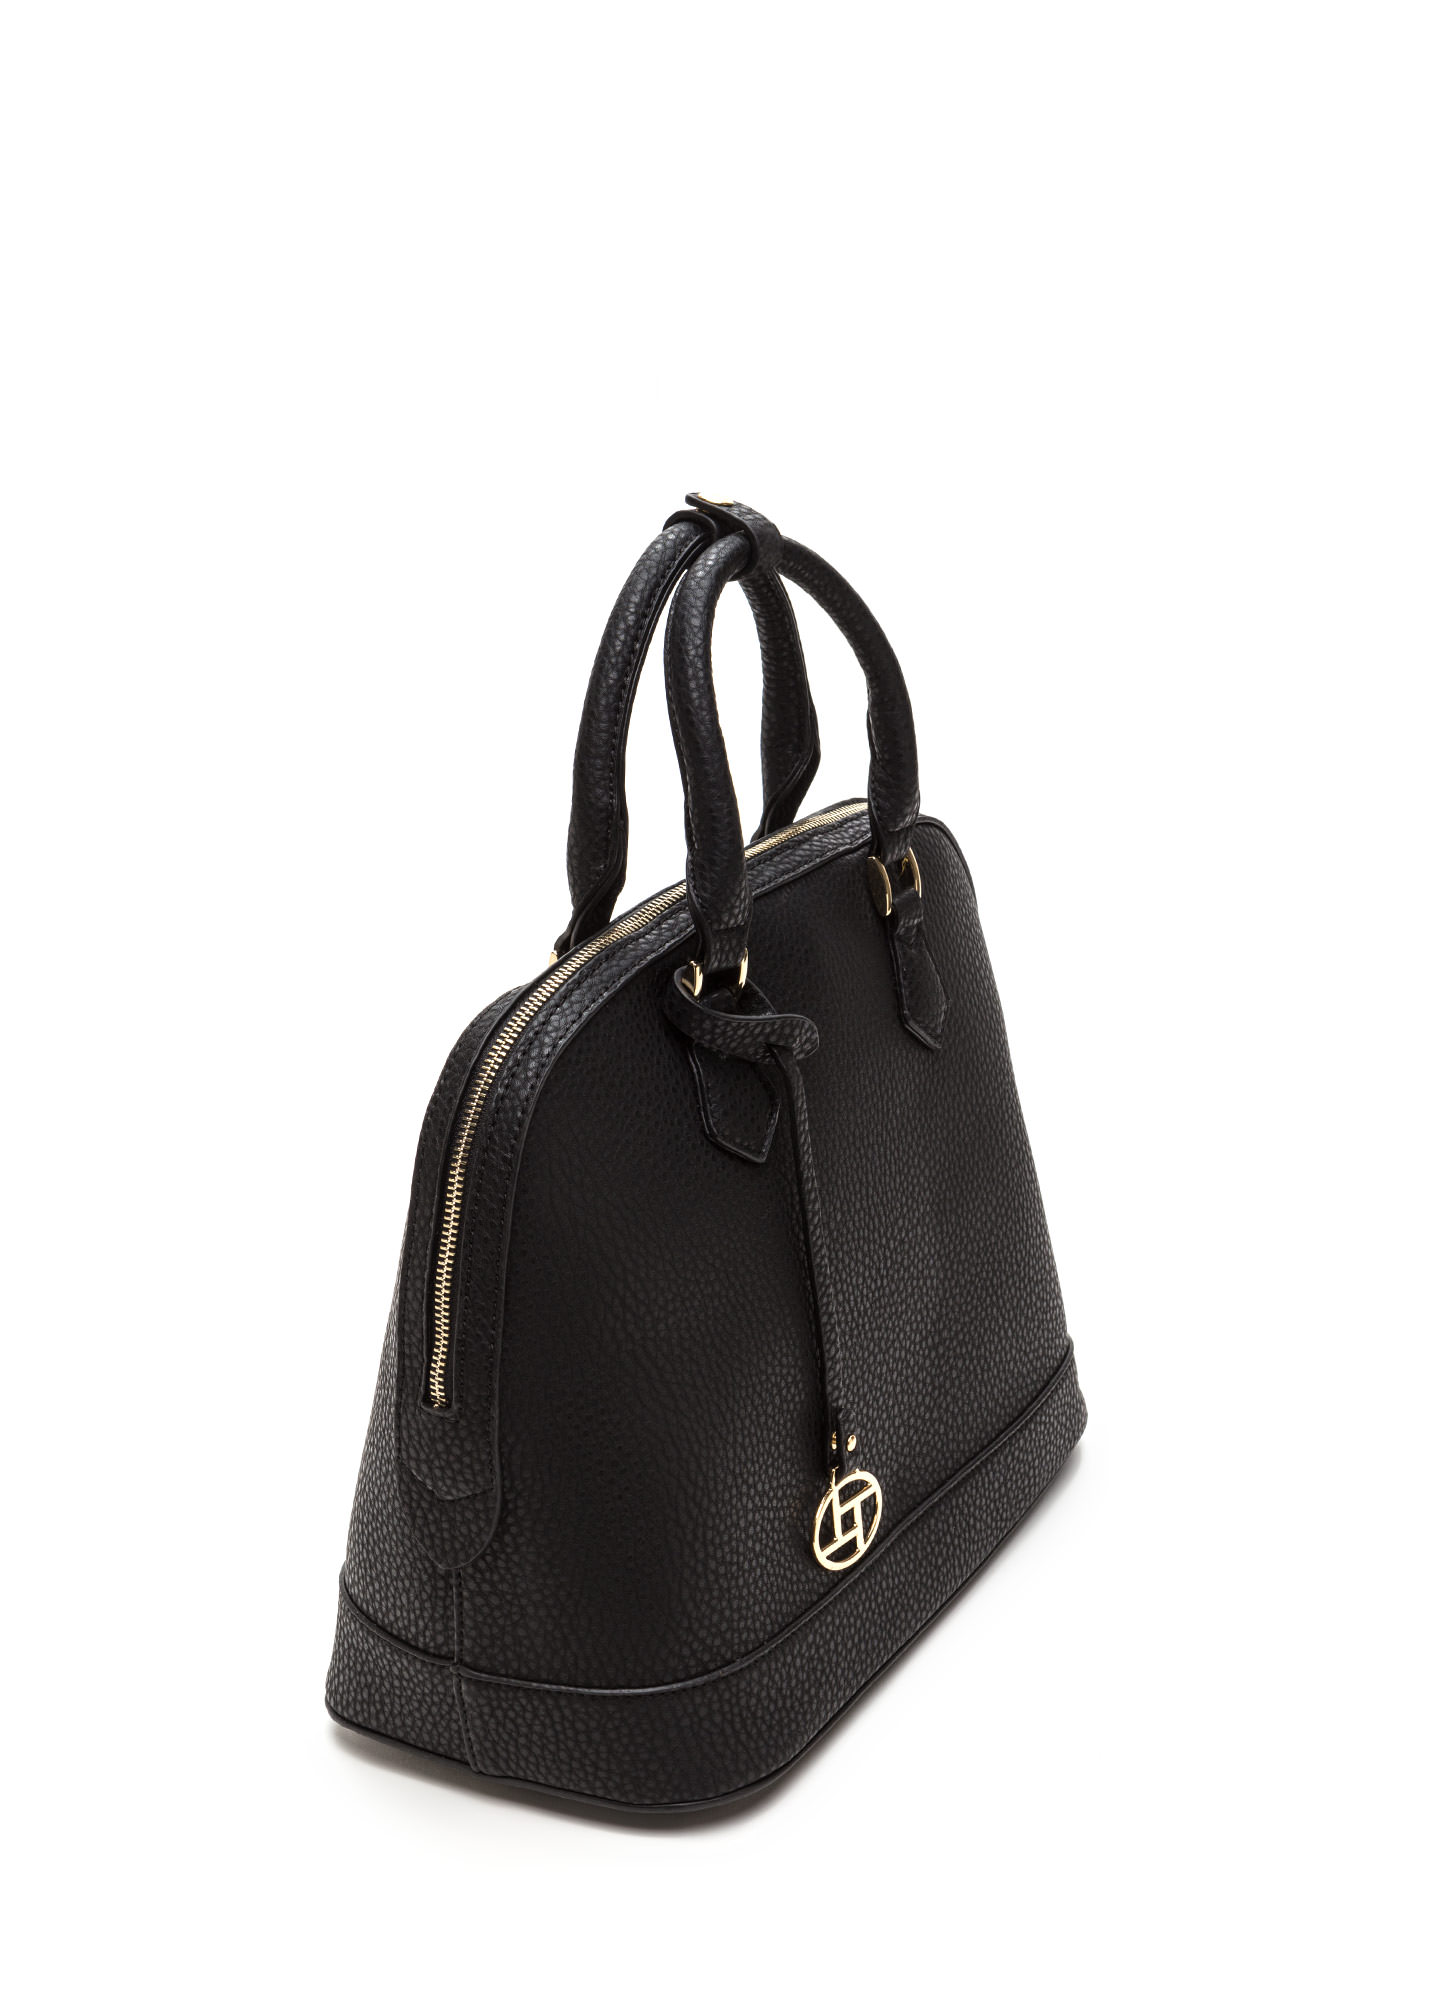 All Day Everyday Bag BLACK